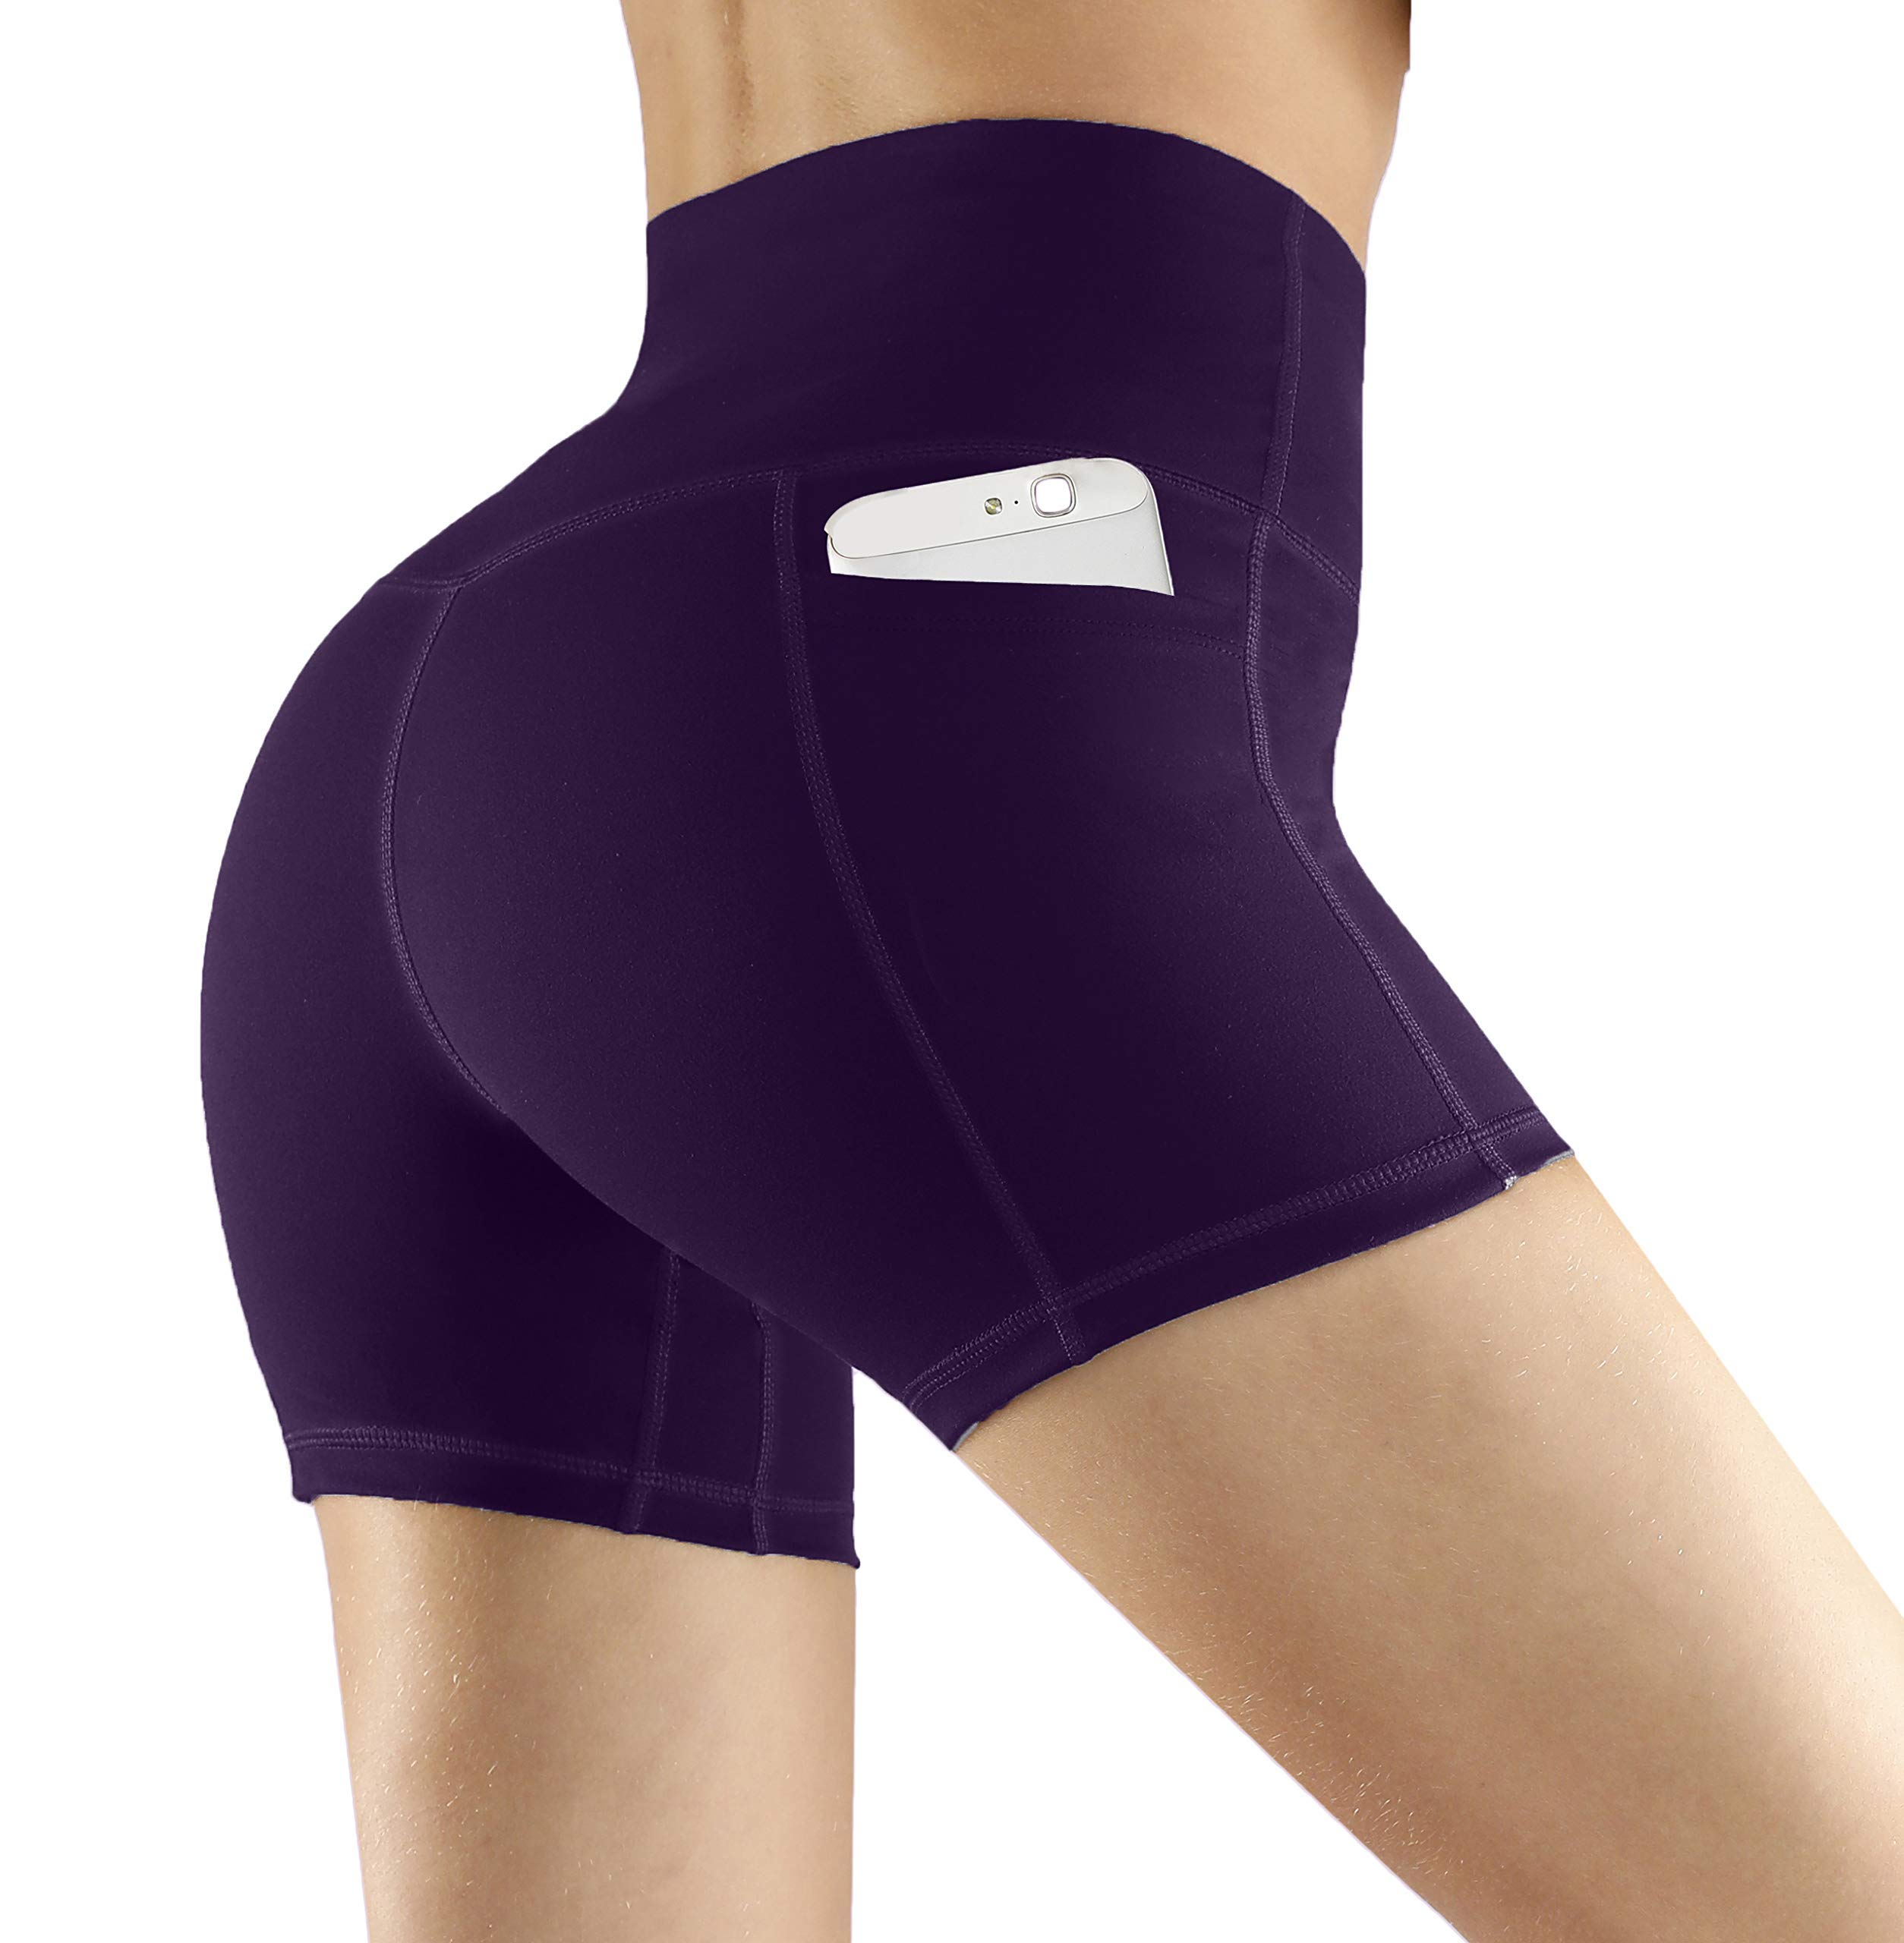 Fengbay High Waist Yoga Shorts, Workout Running Shorts with Side Pockets Tummy Control Compression Shorts for Women Purple by Fengbay